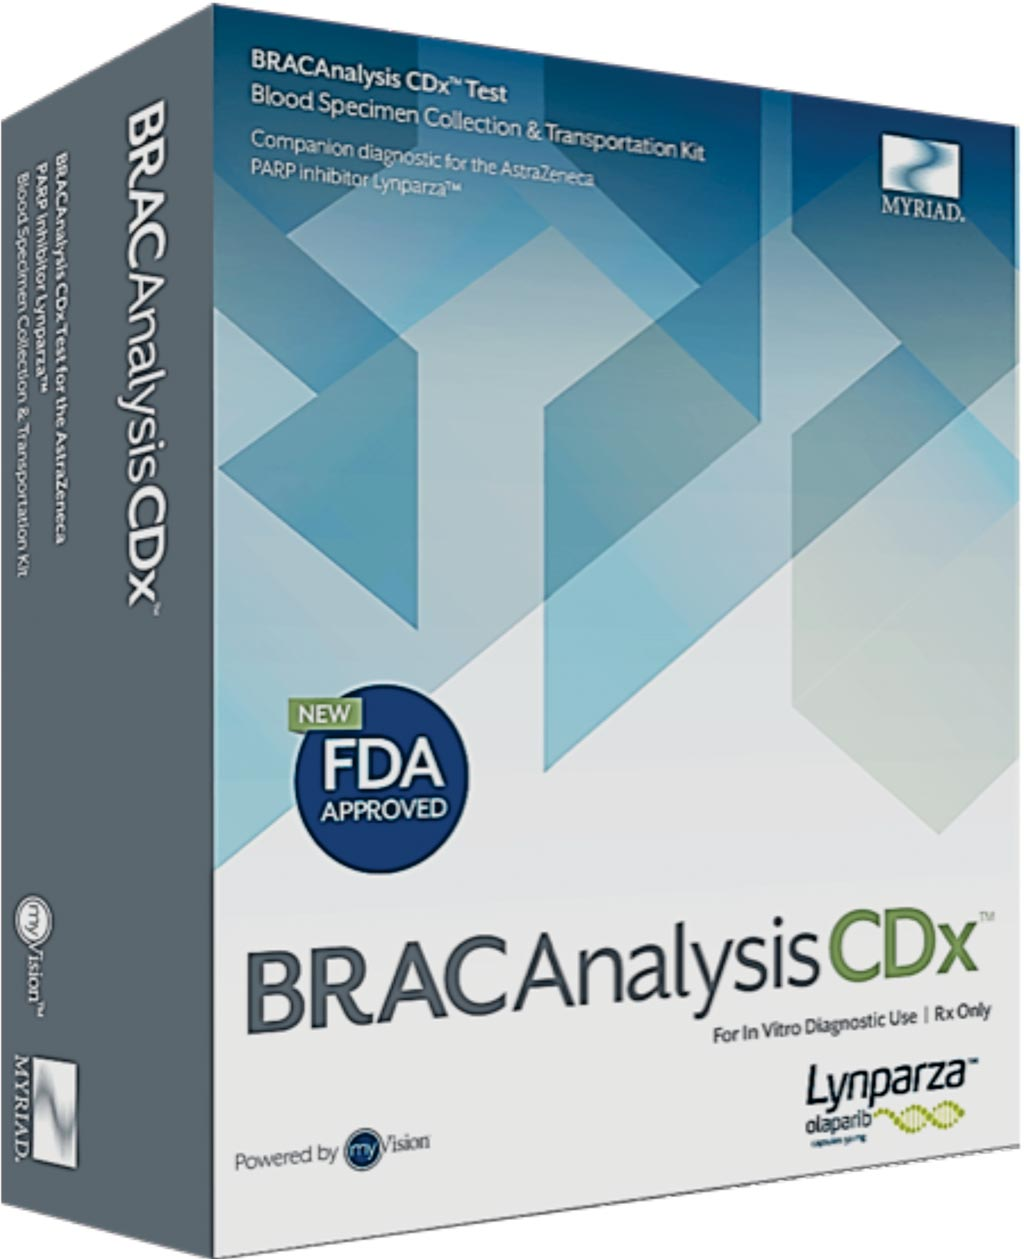 Image: The FDA-approved BRACAnalysis CDx test as a companion diagnostic (Photo courtesy of Myriad Genetics).